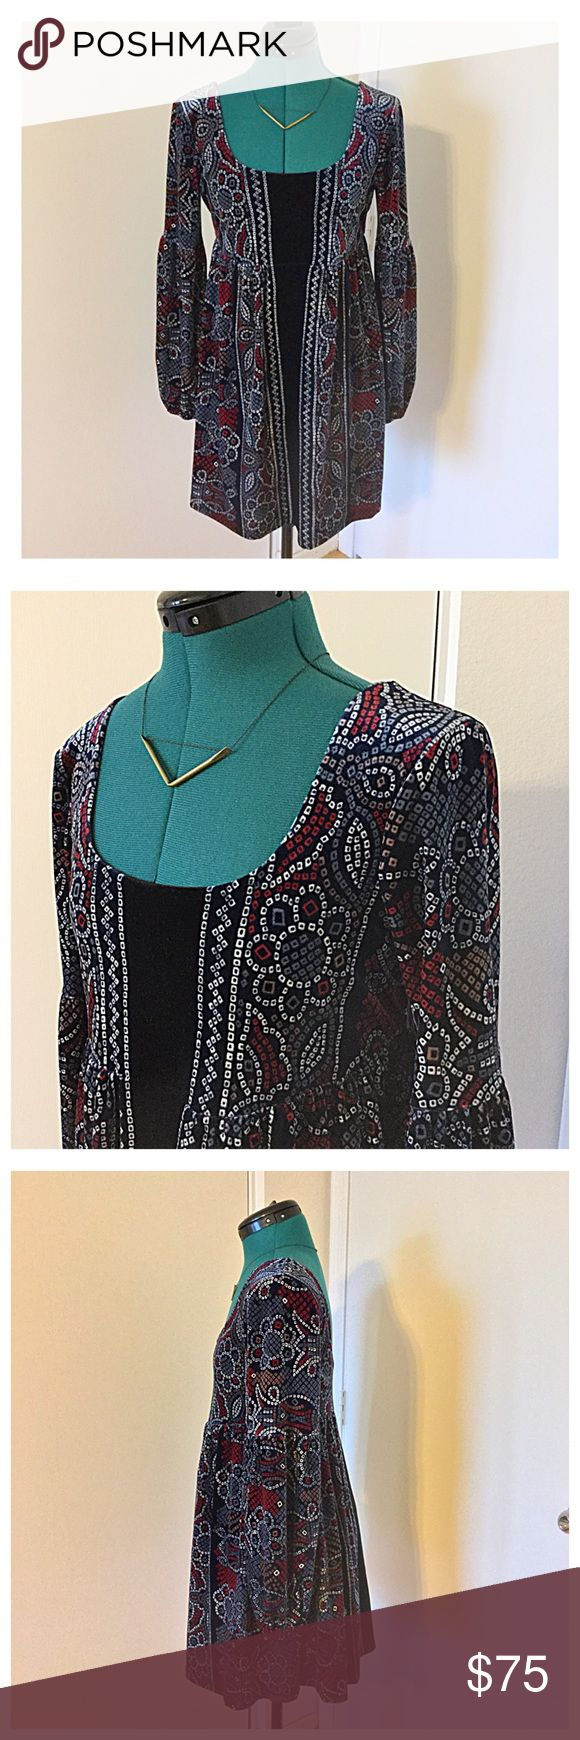 Free People Boho Velvet Dress Ahhhhhmazing dress that in all its 90's throwback glory. Beautiful soft velvet in dark bold jewel tones. Would look great with opaque tights or bare legged with black ankle boots. Open to reasonable offers. No trades. Free People Dresses